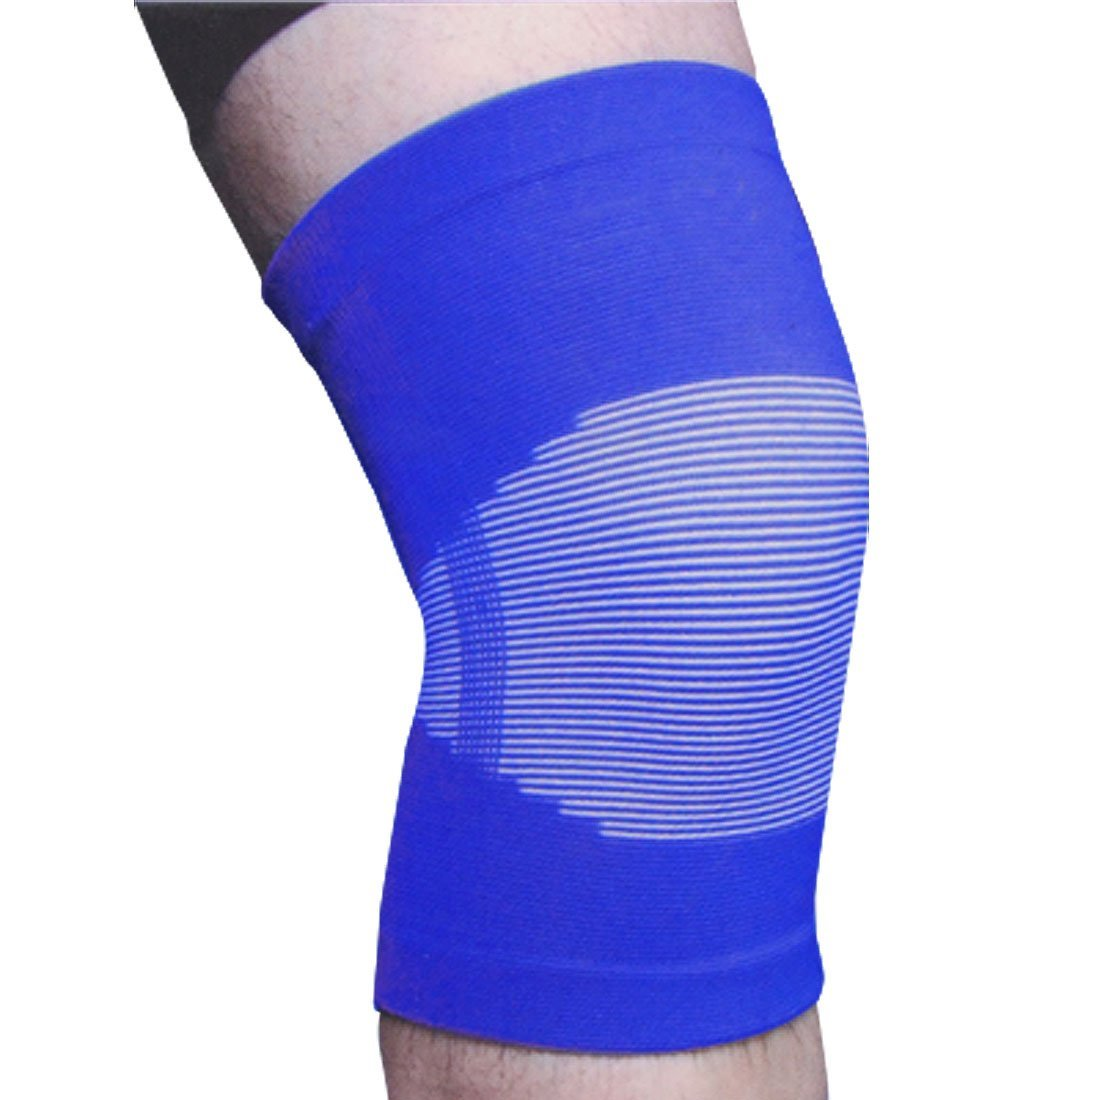 Blue White Stretchy Knee Sleeves Support Wrapper Brace